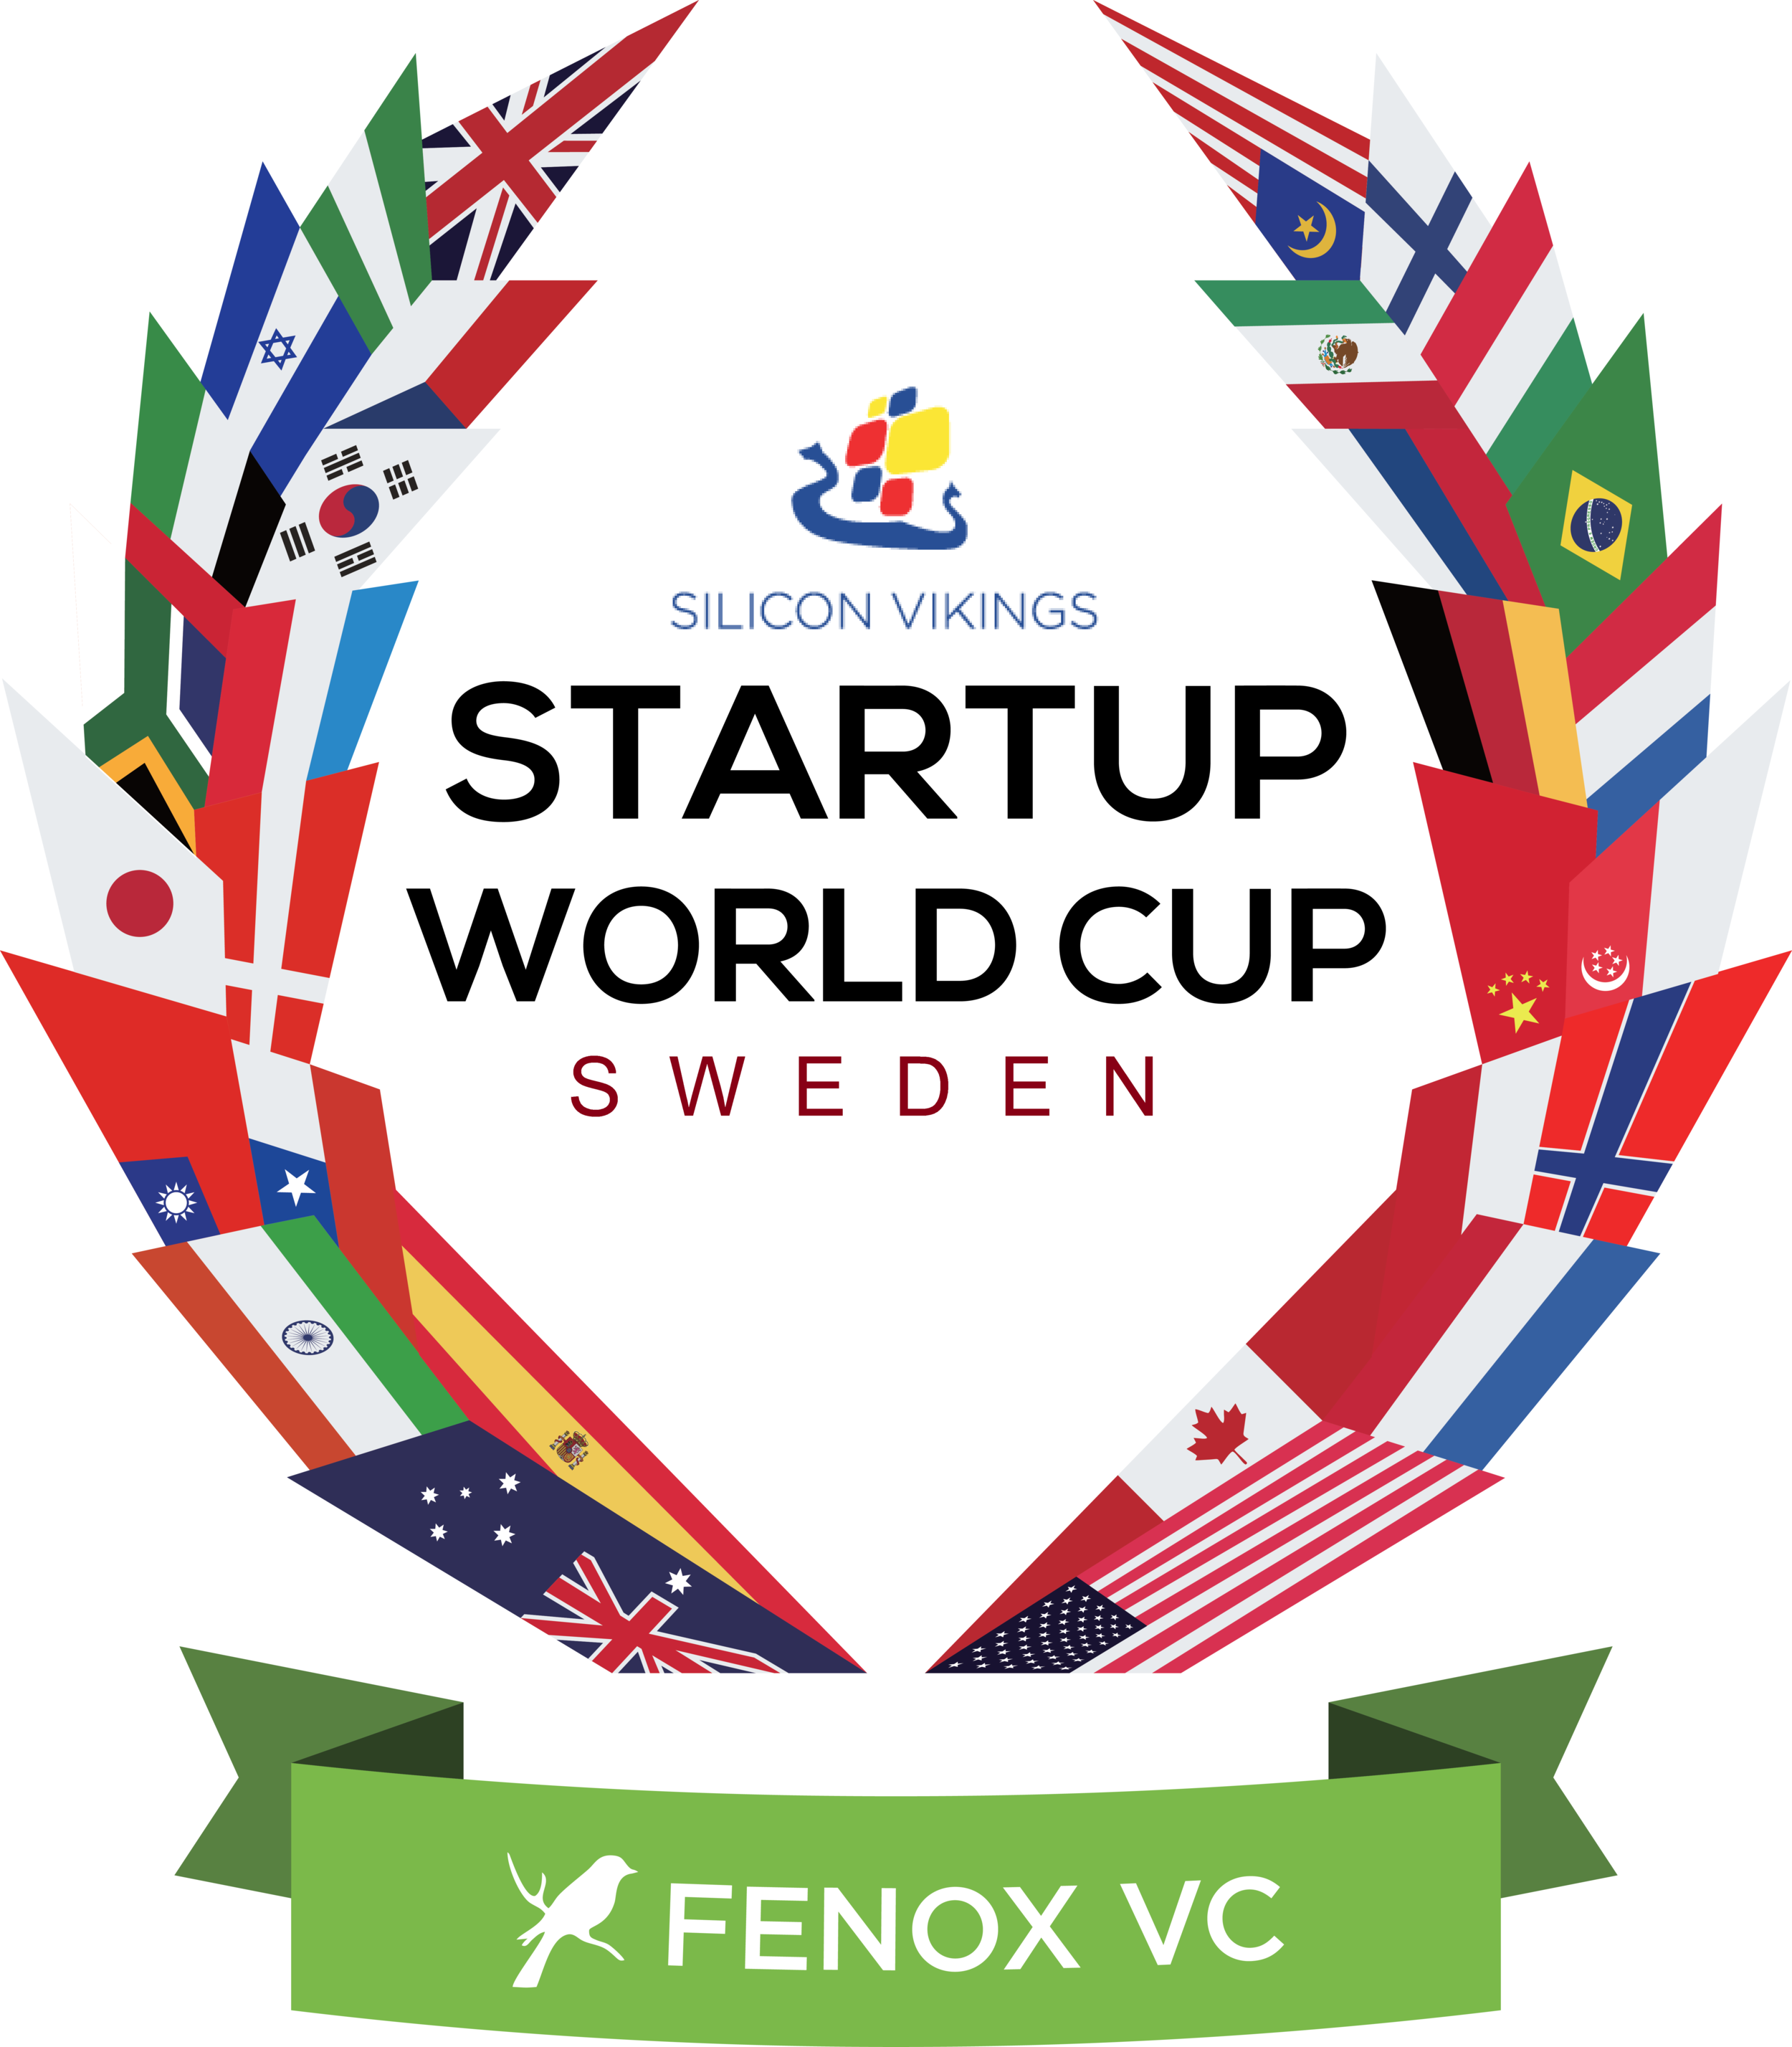 SILICON VIKINGS & STARTUP WORLD CUP SWEDEN COUNTRY COMPETITION -